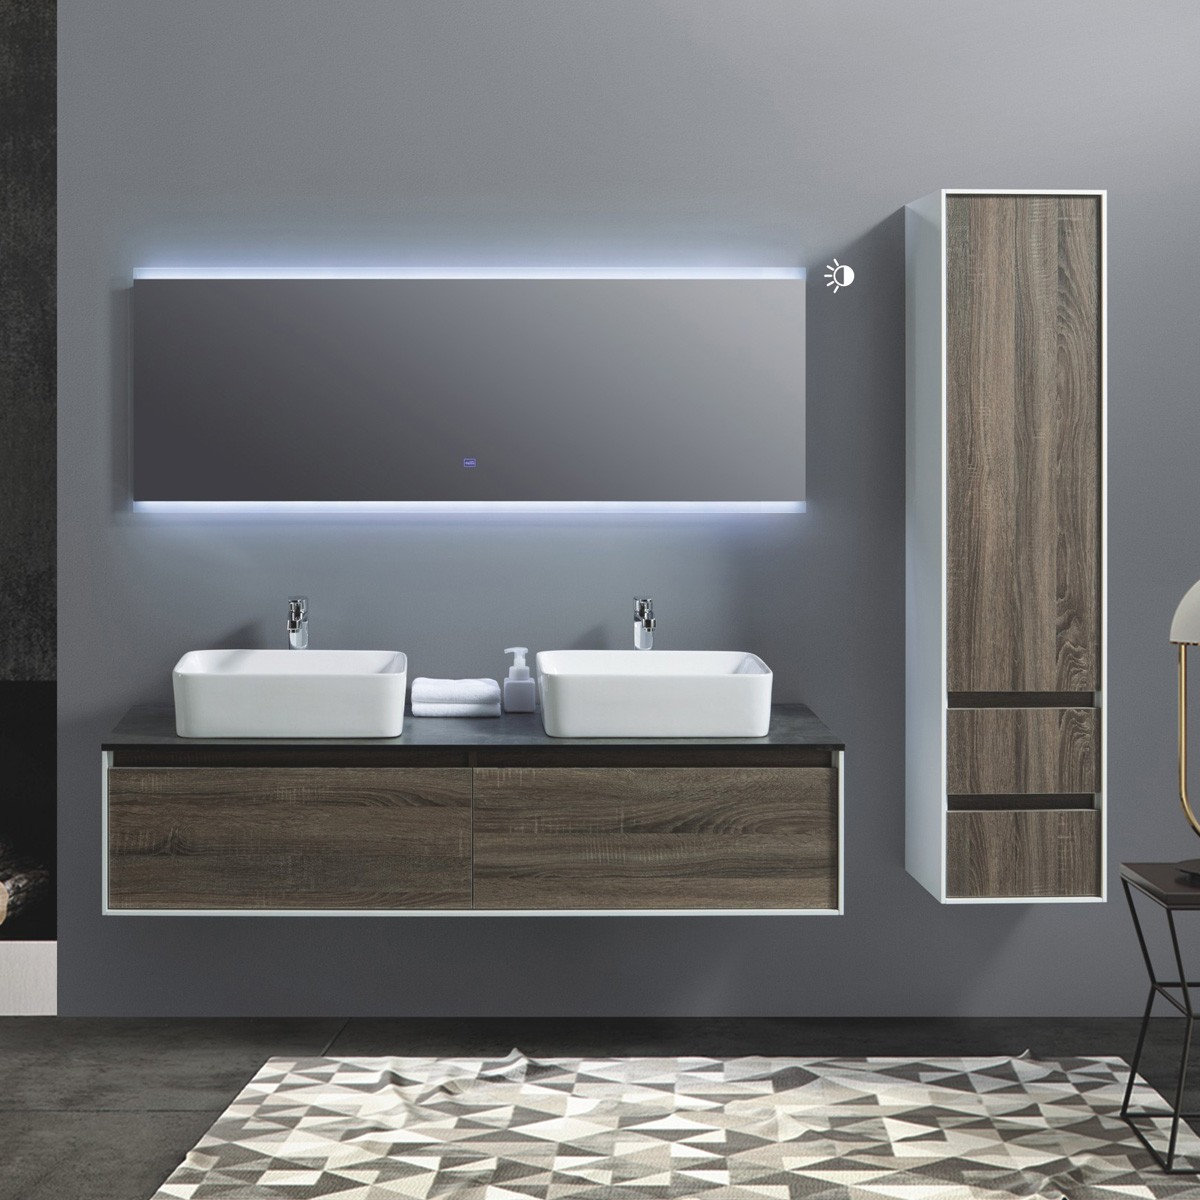 60 In. Wall Mount Vanity Set with Linen Cabinet and LED Mirror (AG1500D-SET)